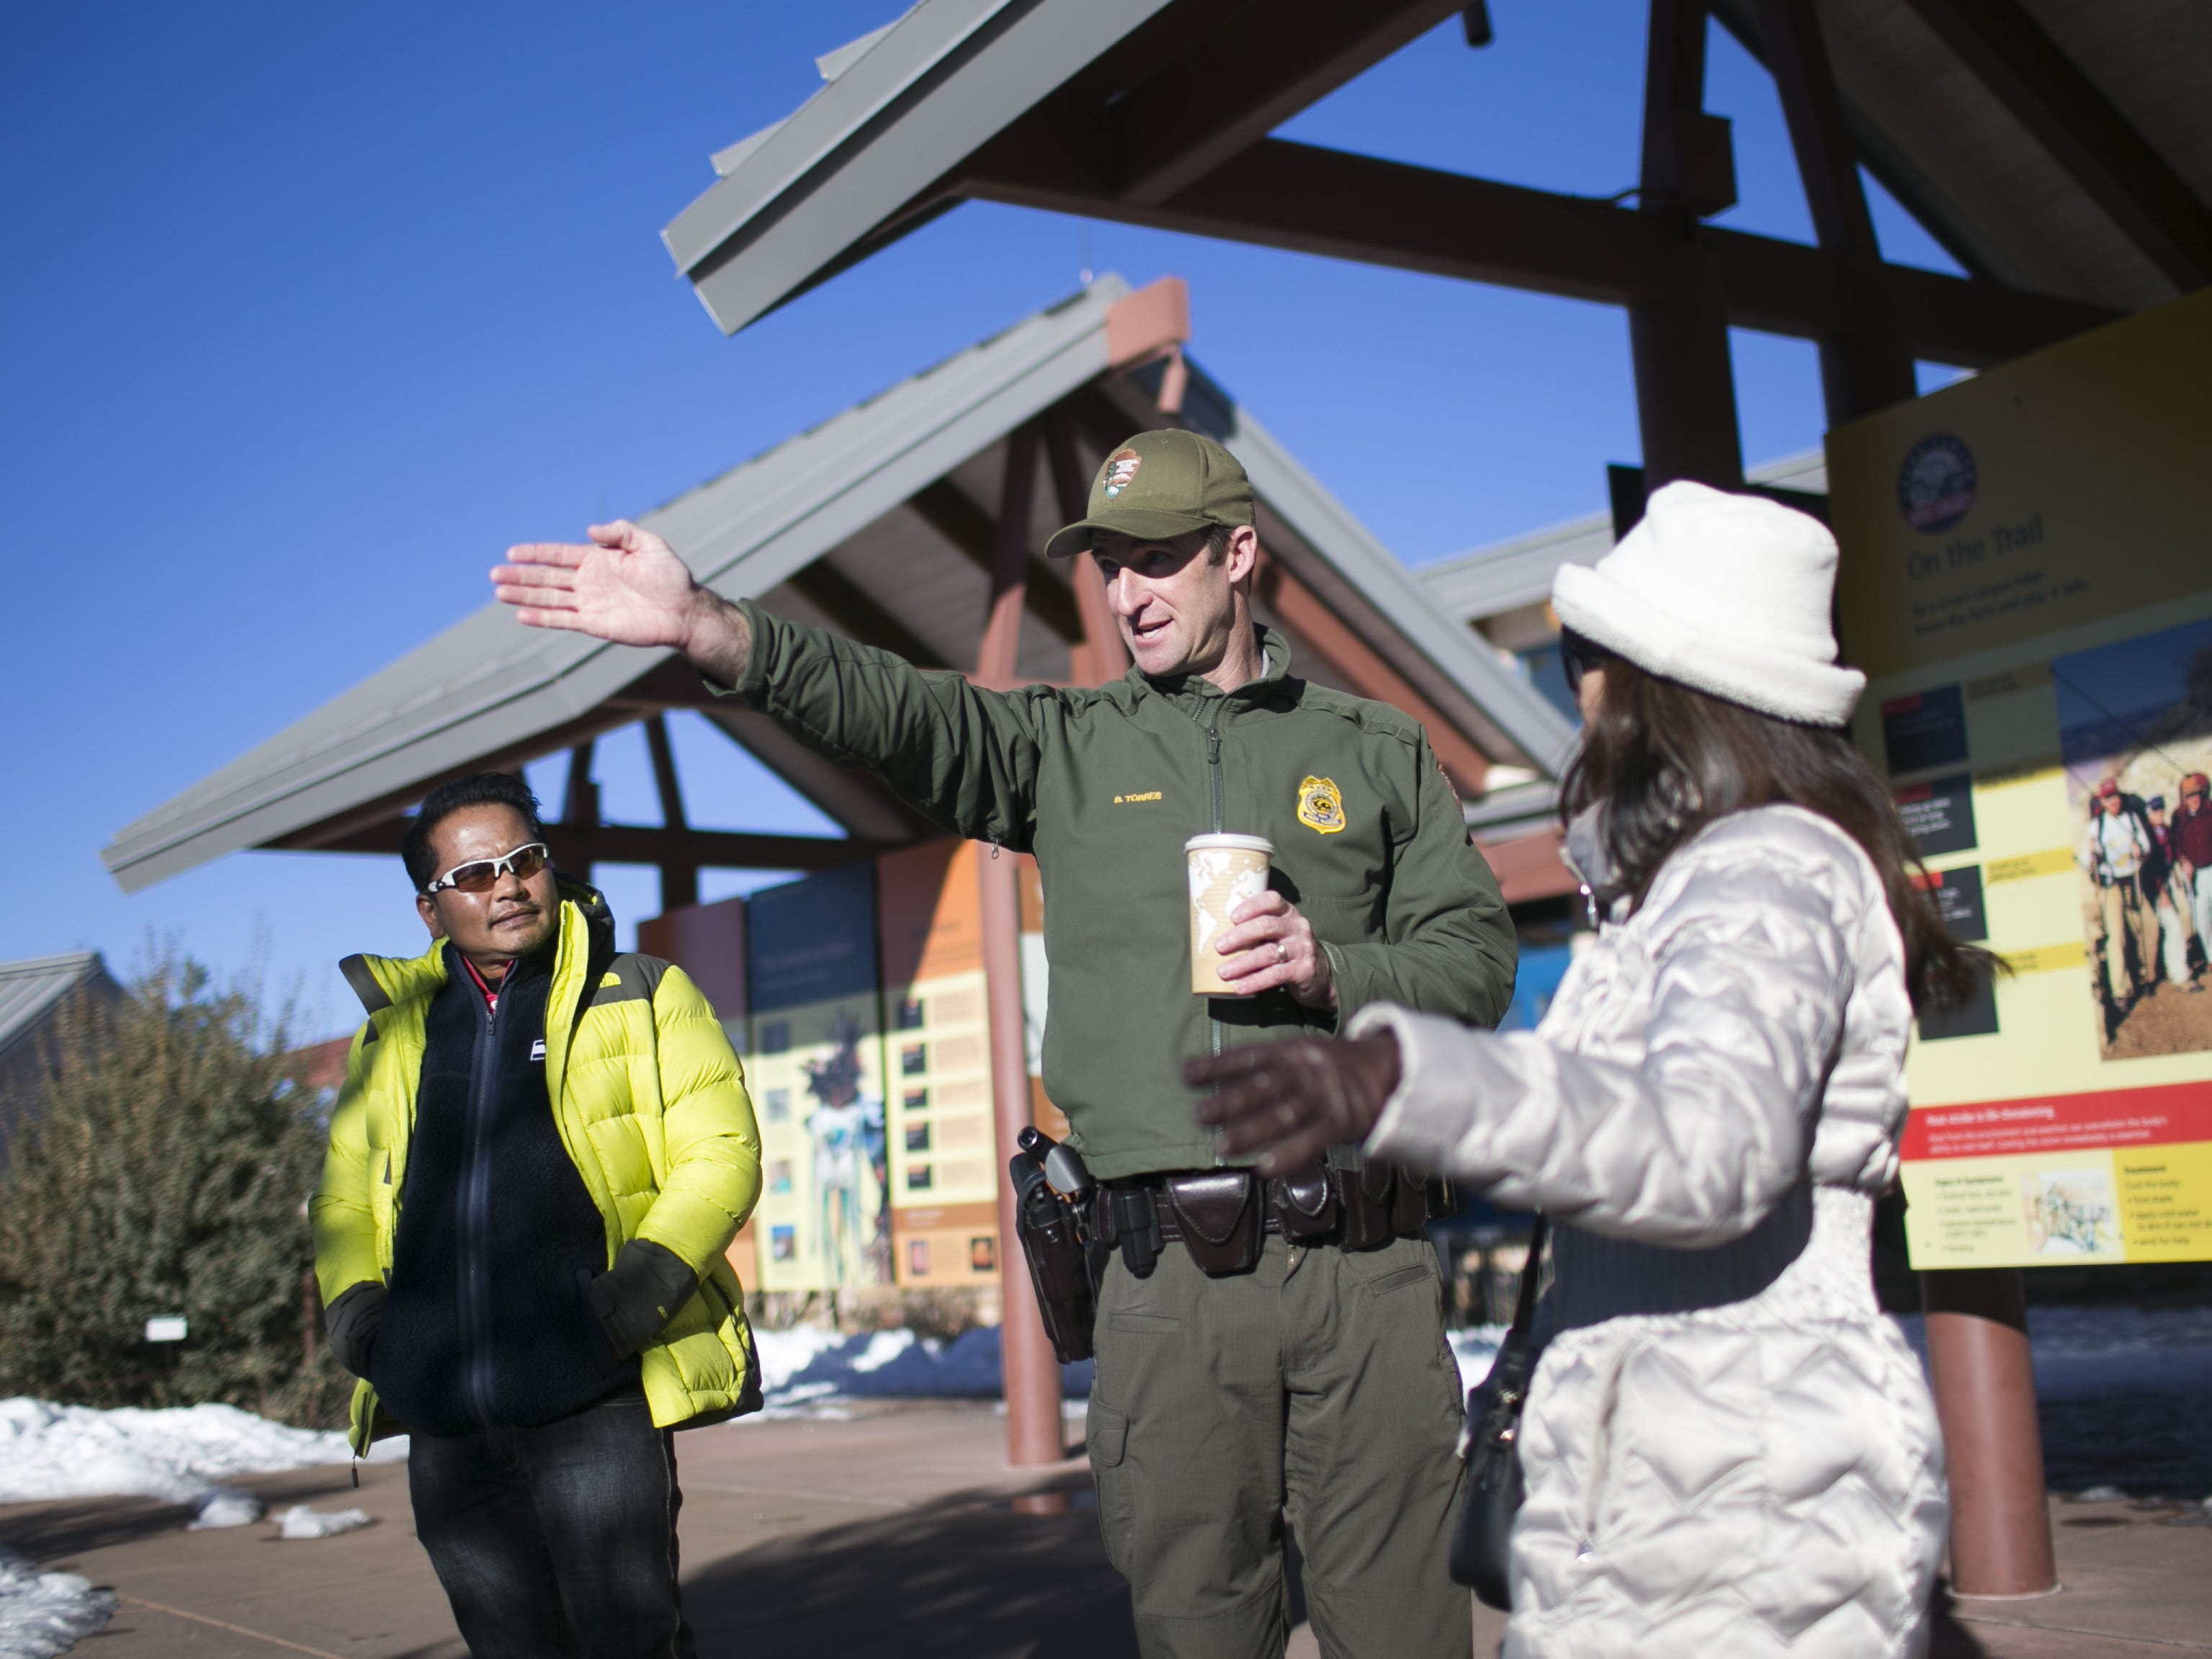 Brandon Torres (center), the Branch Chief of Emergency Services at Grand Canyon National Park, directs guests in the park on Jan. 4, 2019. The park was staffed at minimum capacity due to the government shutdown but retained much of its services due to an executive order issued by Arizona Governor Doug Ducey to run the park with state funds in the event of a shutdown.